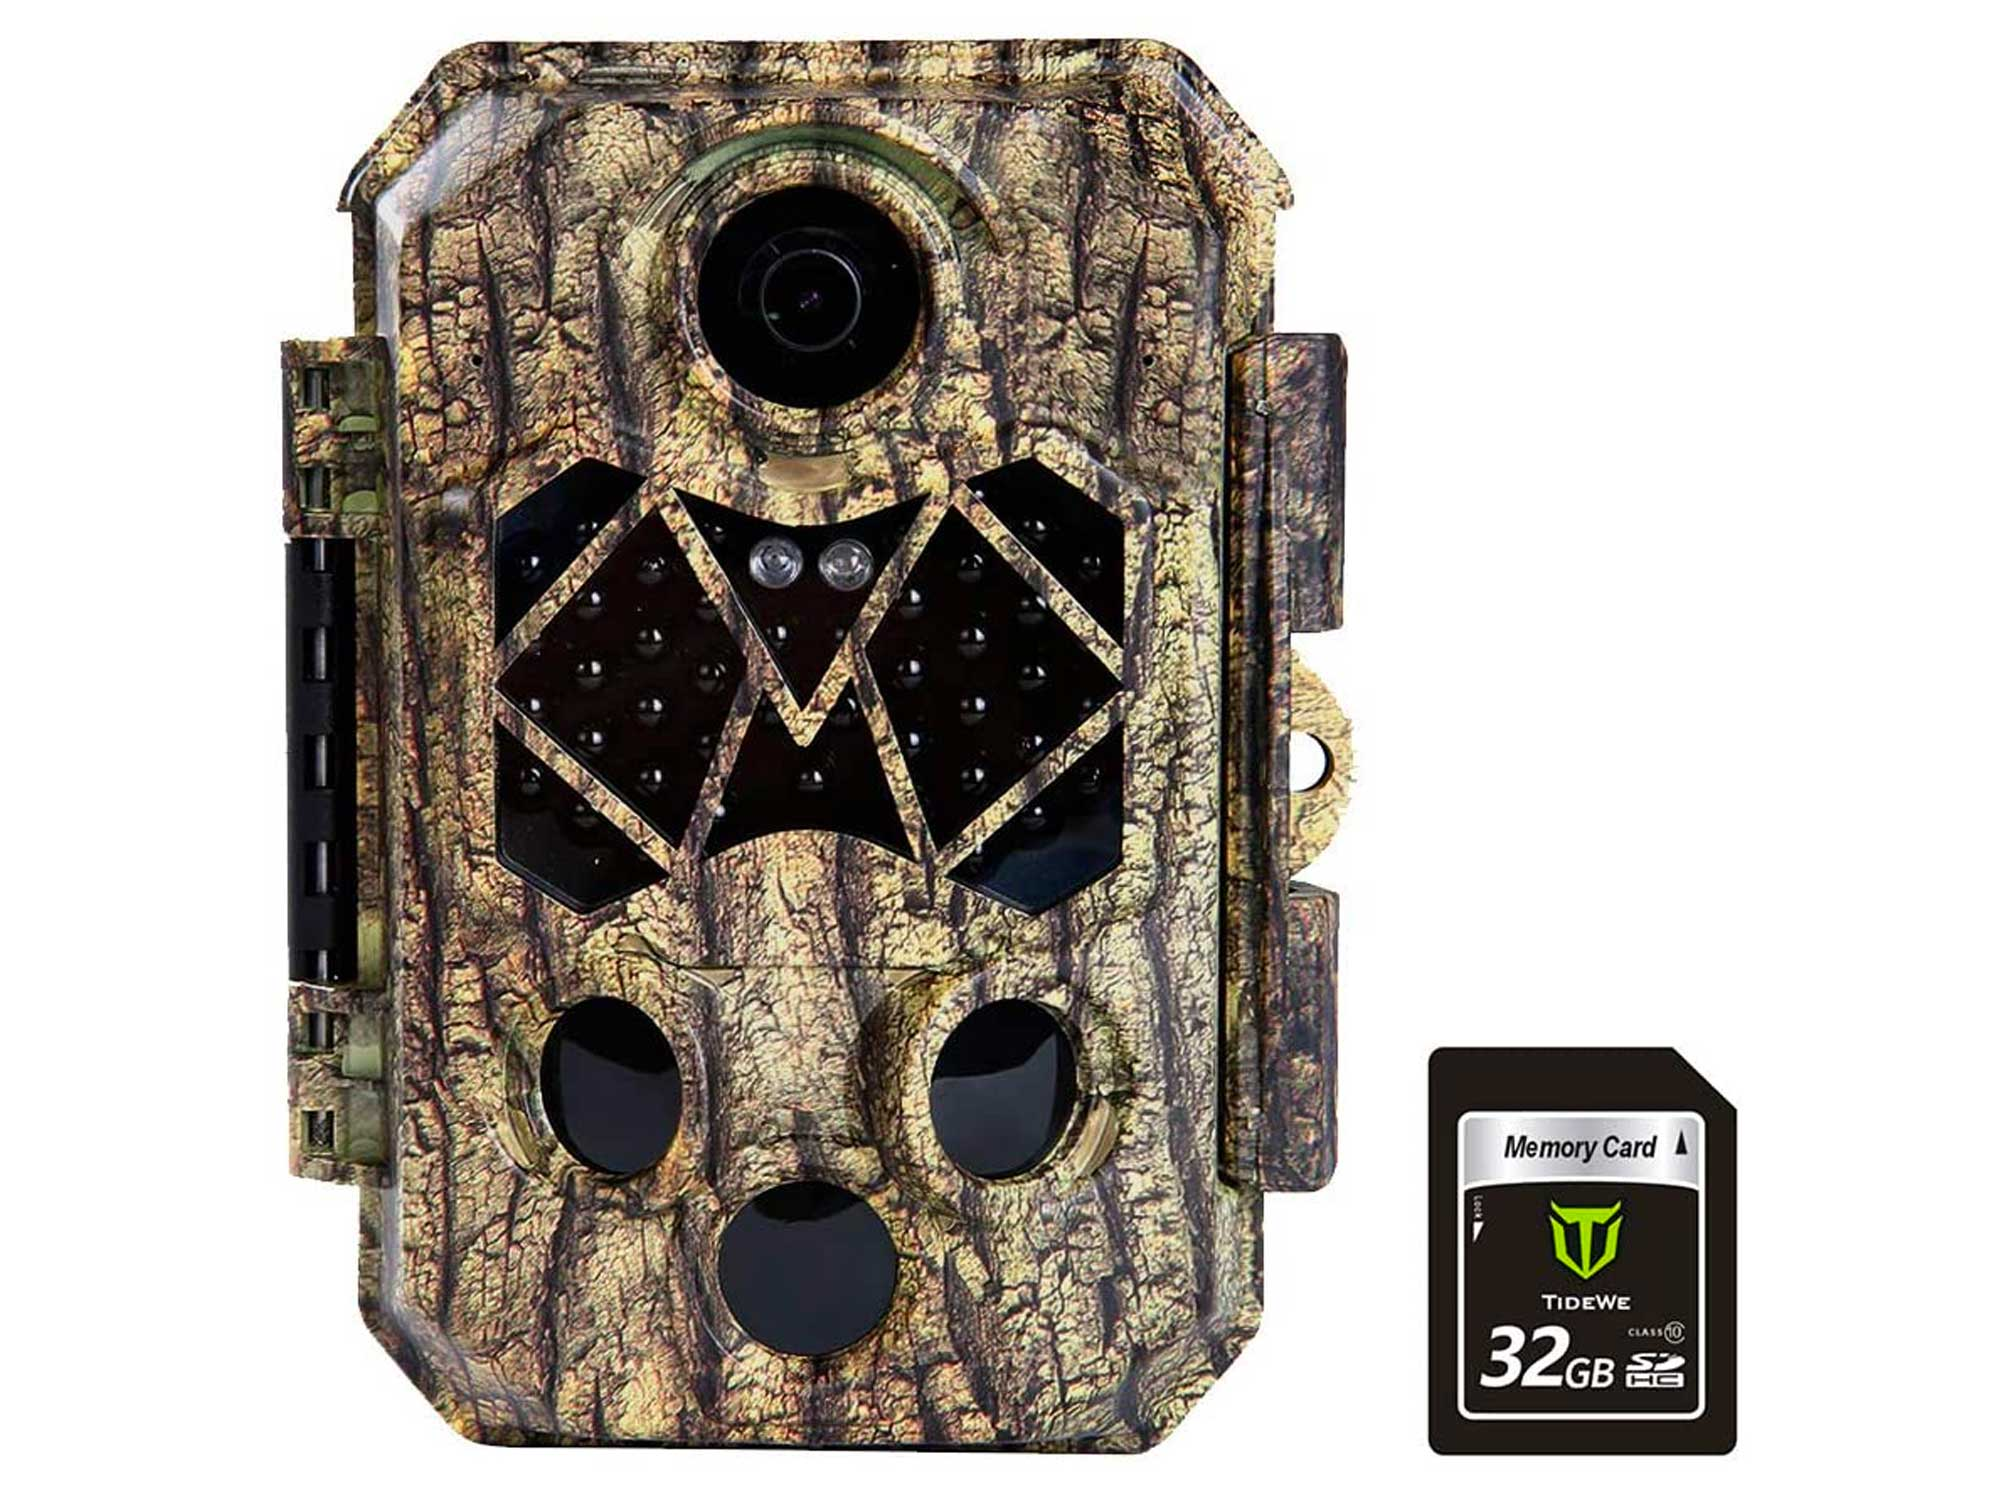 TideWe Trail Camera with 32GB SD Card, 32MP 4K Hunting Camera with 0.2s Trigger 3 PIR, 120° Range Night Vision 45 LEDs Waterproof Scouting Camera for Wildlife Monitoring, Home Security (Tree)